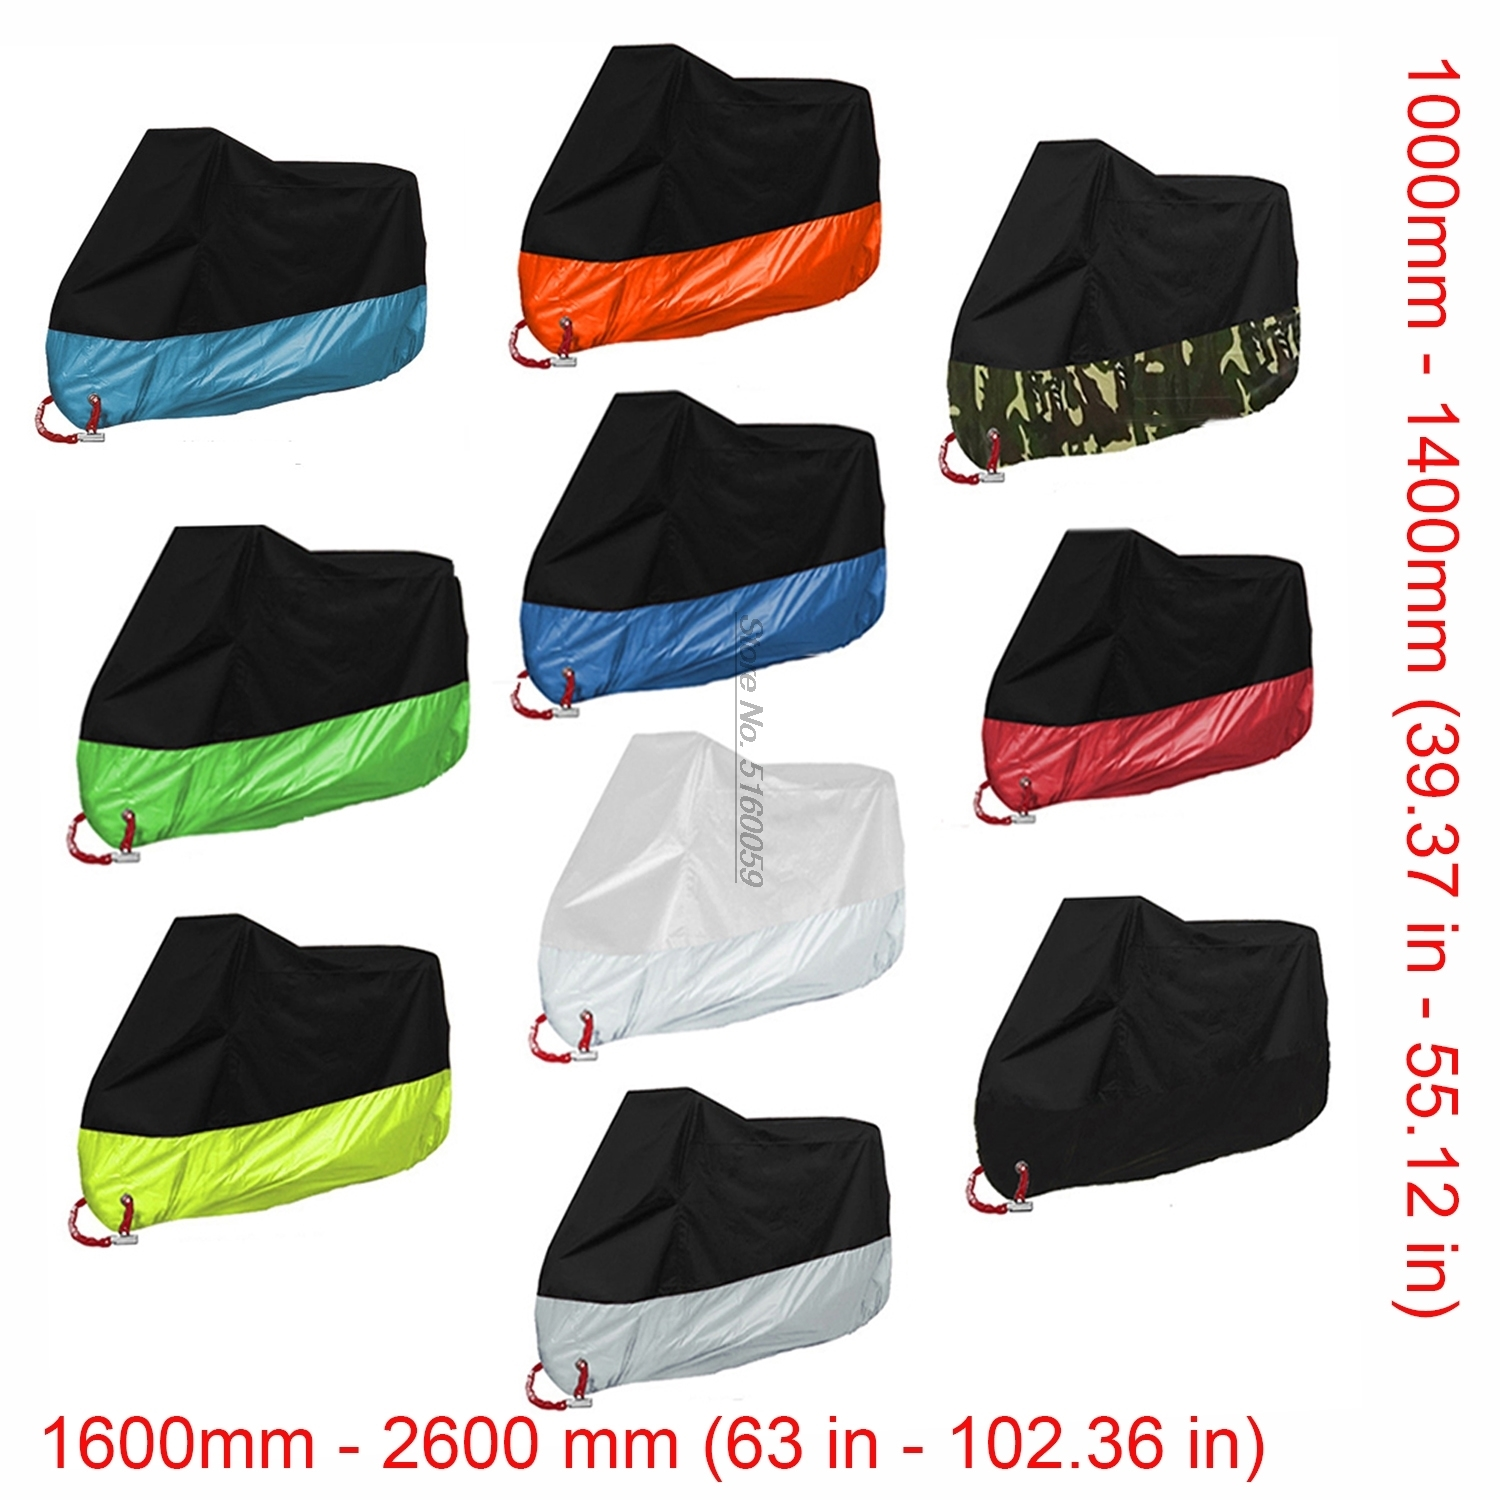 UV-Anti Motorcycle Covers for Ktm 990 Adventure <font><b>Yamaha</b></font> <font><b>Rd</b></font> <font><b>350</b></font> S1000R <font><b>Yamaha</b></font> Mt 09 Tracer Honda Cbr1000Rr Fairings Triumph image